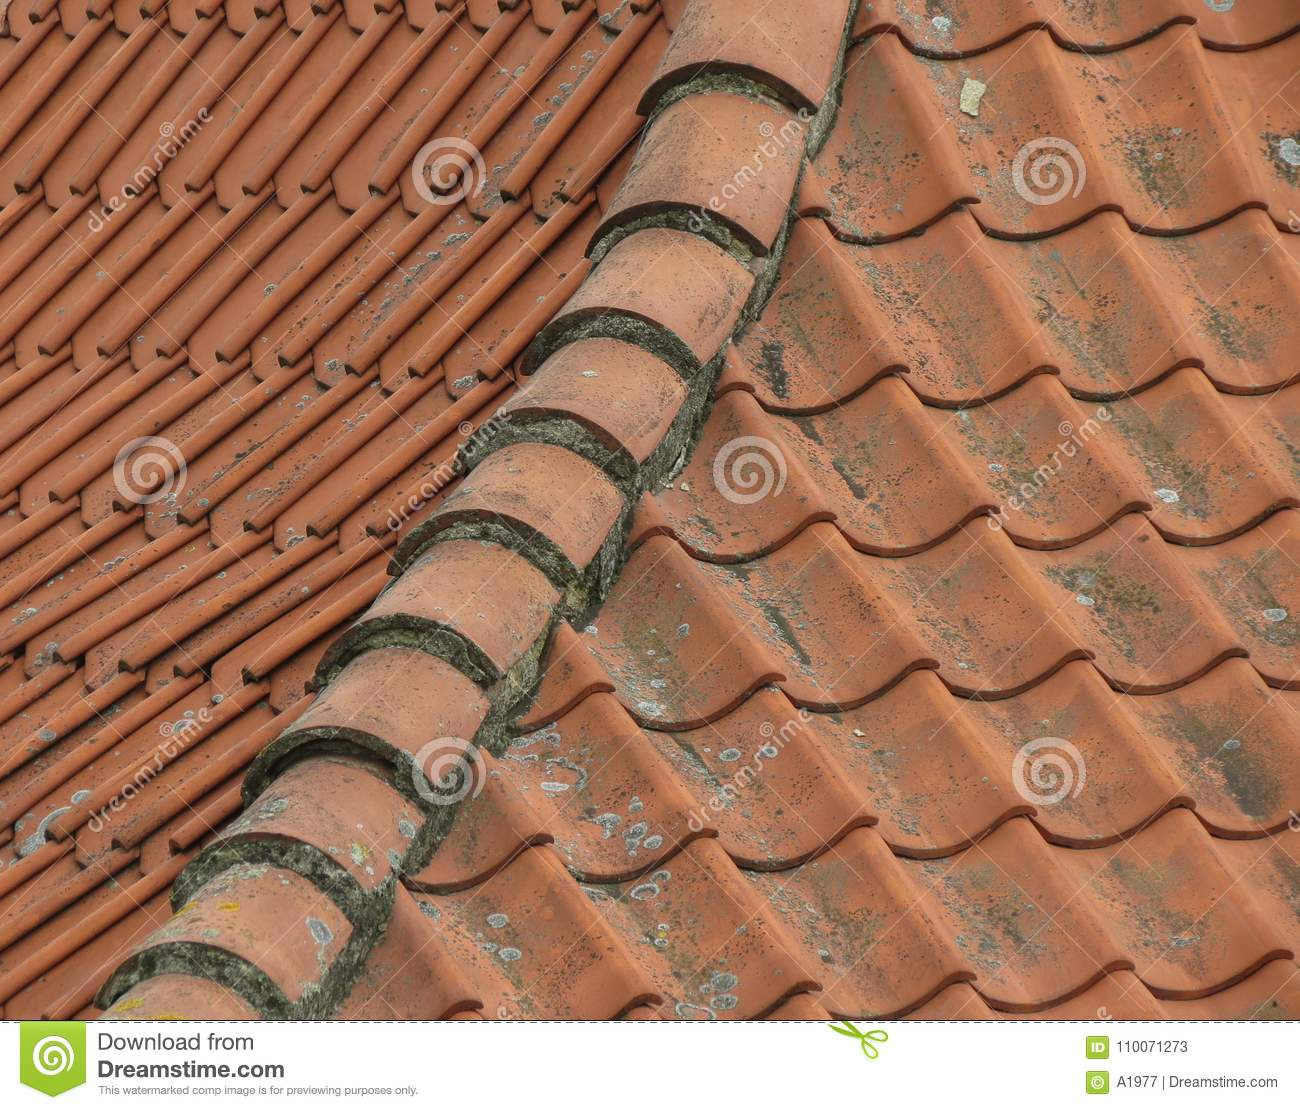 Brick Roof Texture red brick tile roof texture background stock image - image of tile